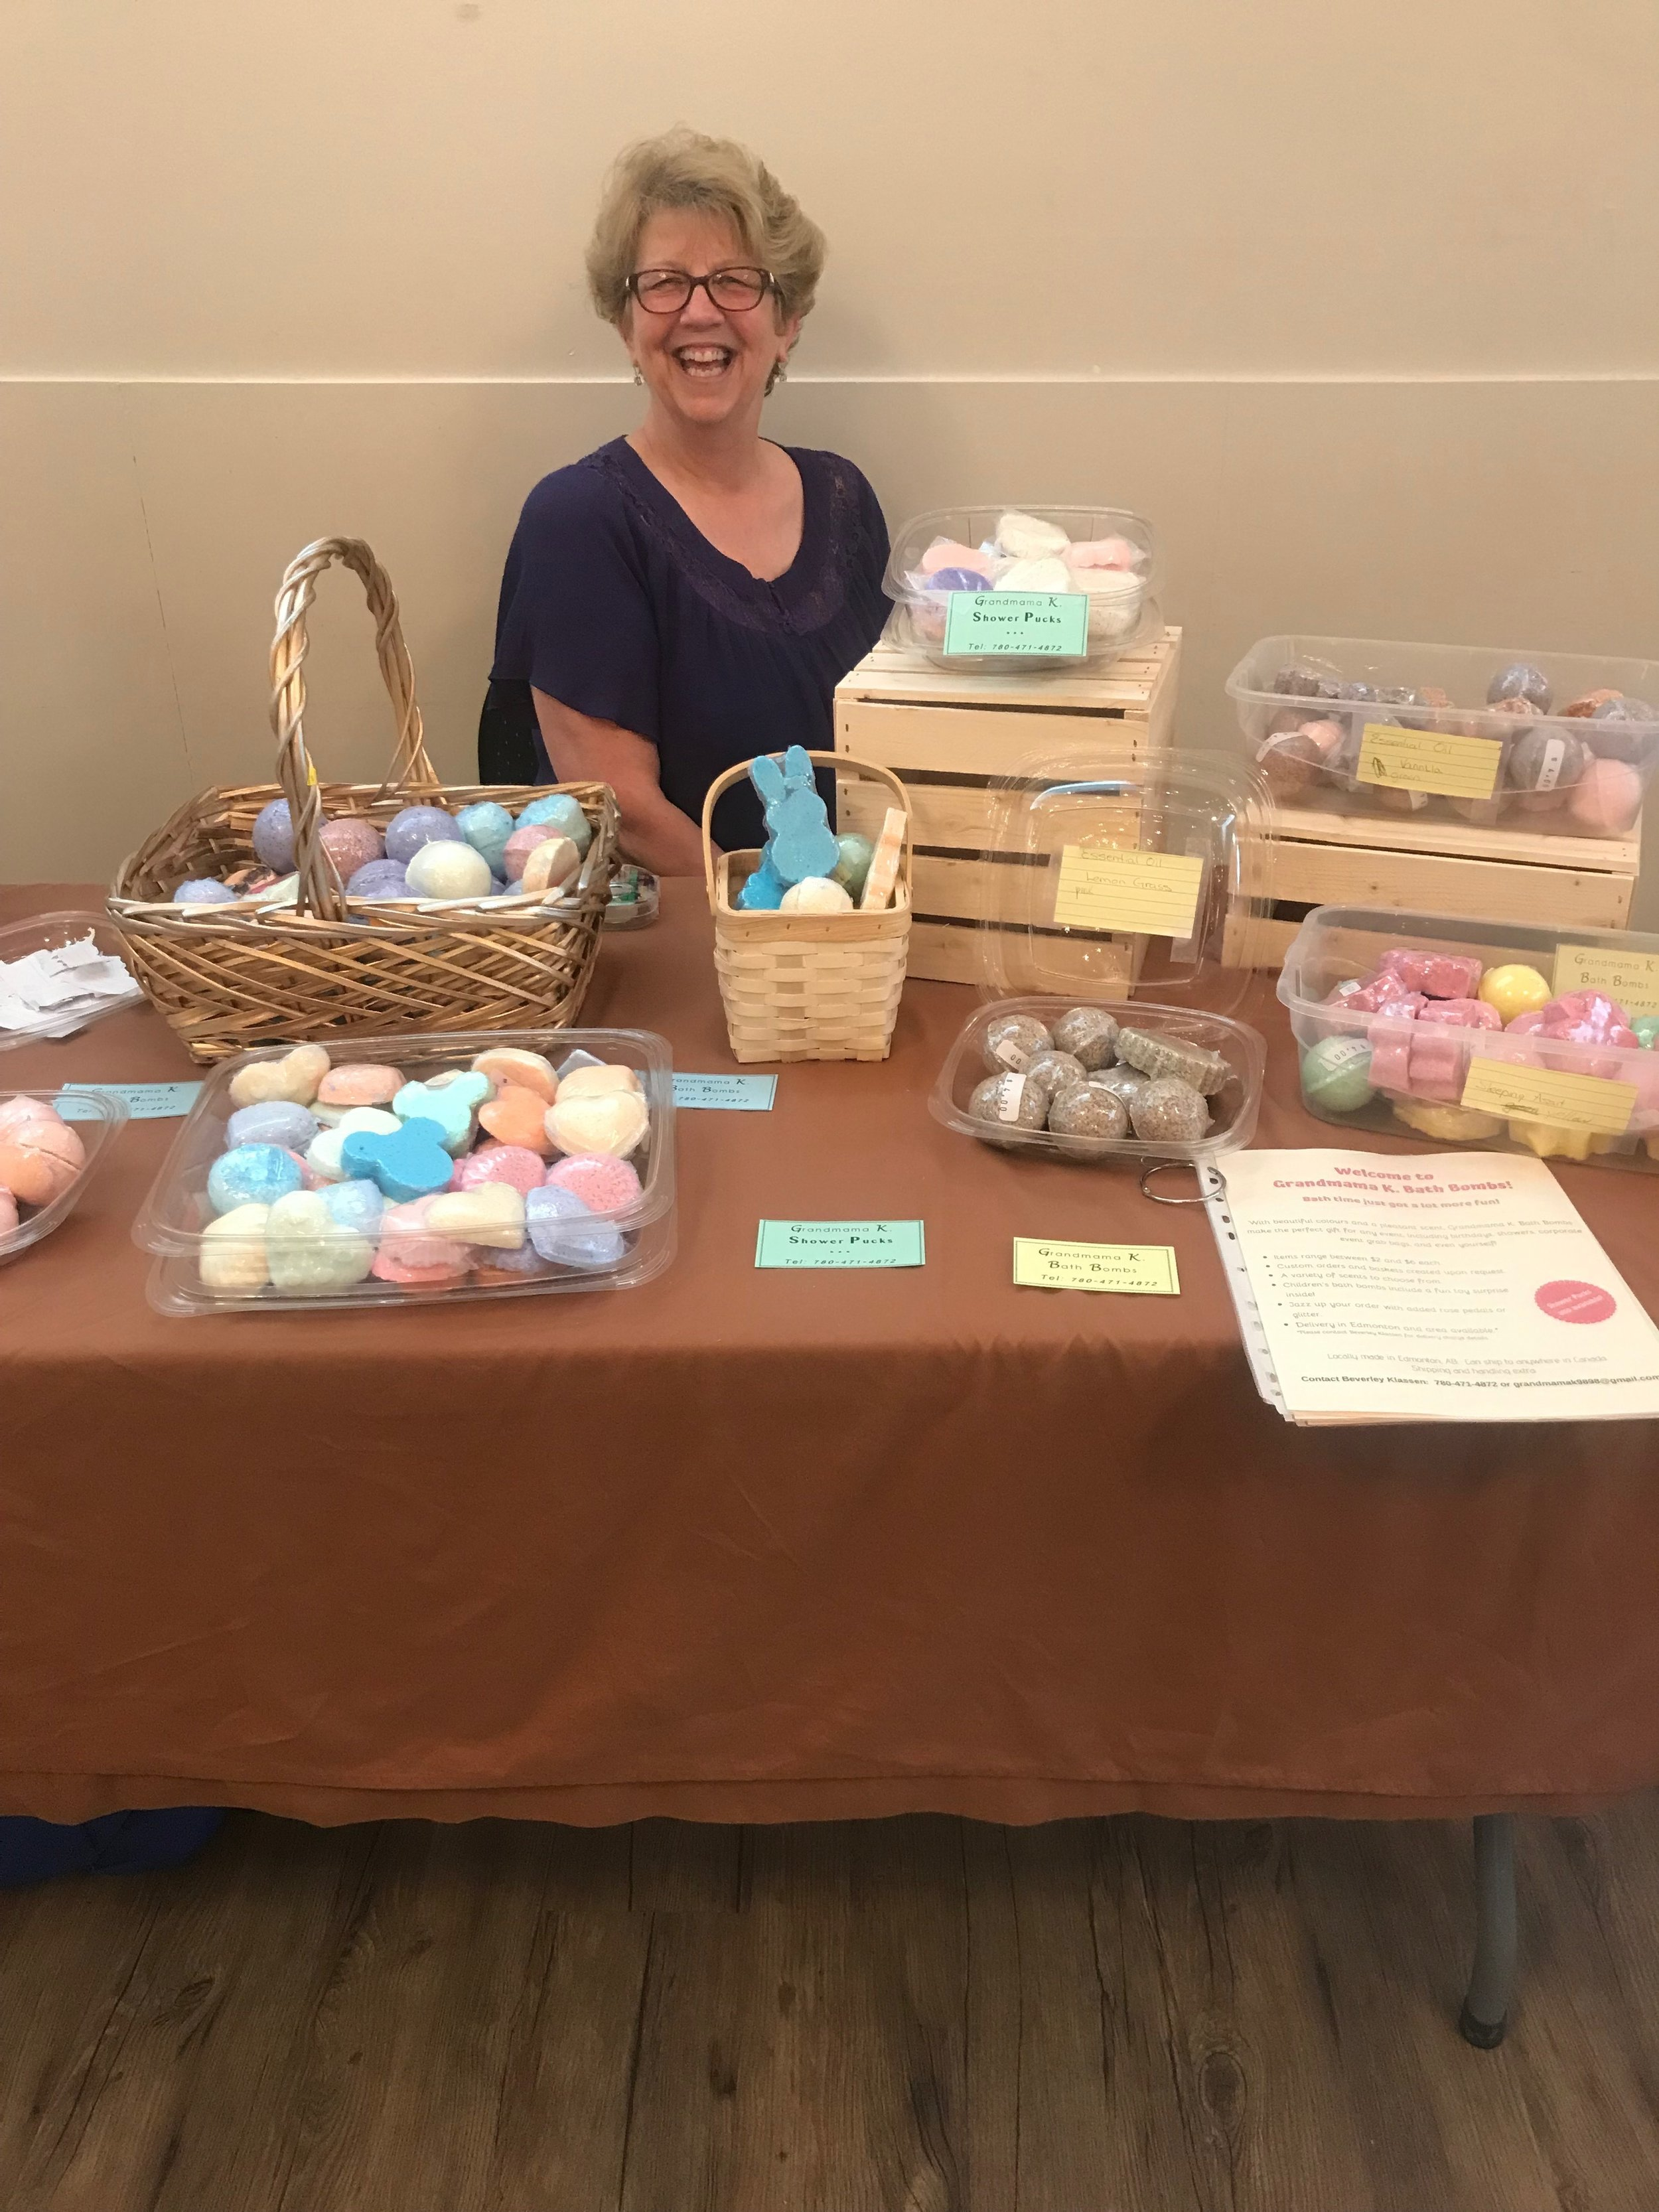 Beverley makes home-made bath bombs with a surprise inside!